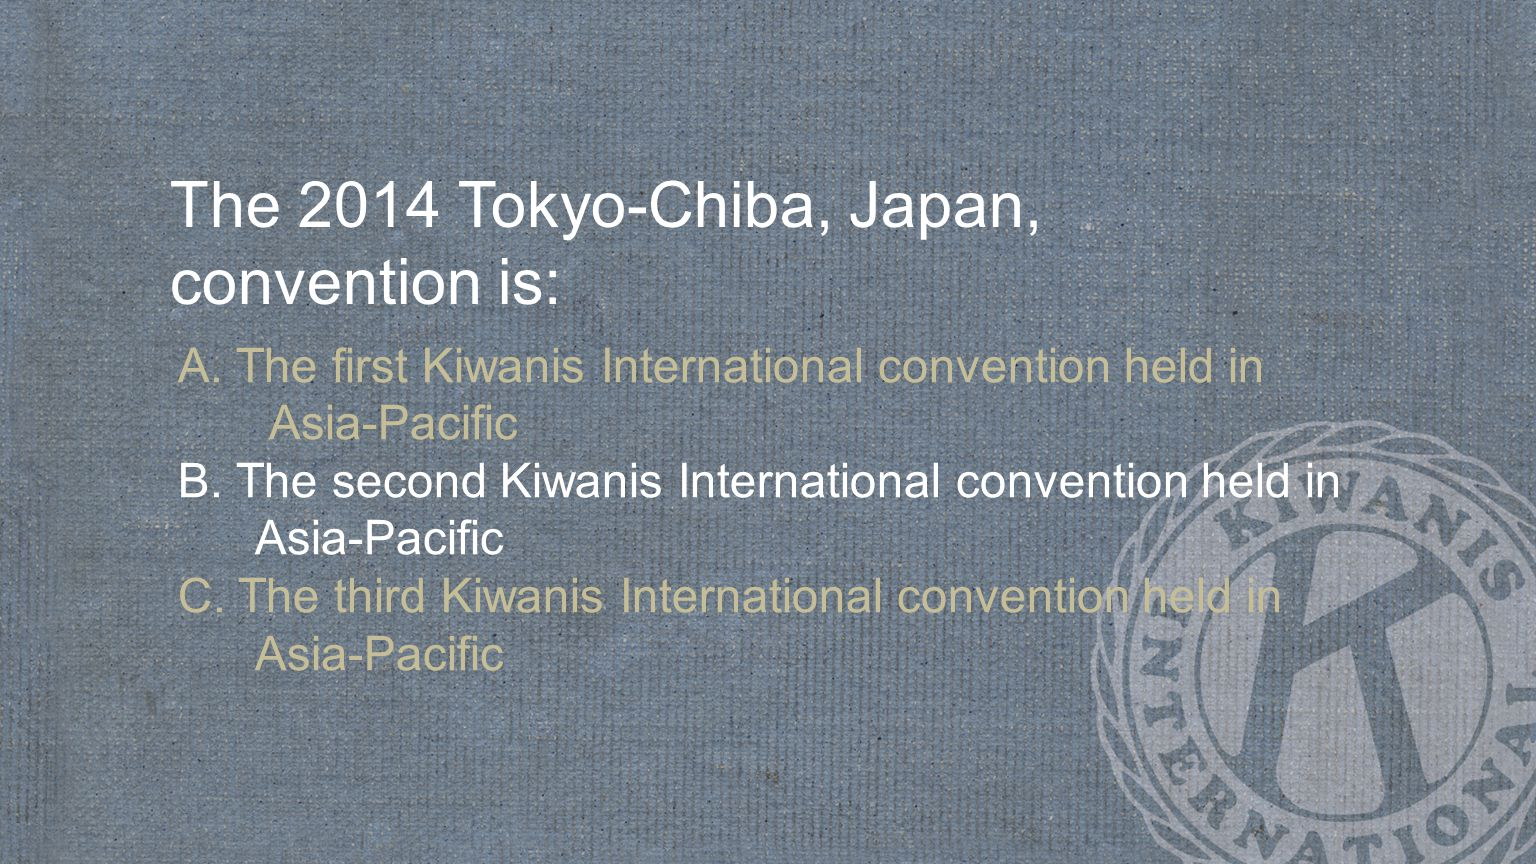 The 2014 Tokyo-Chiba, Japan, convention is: